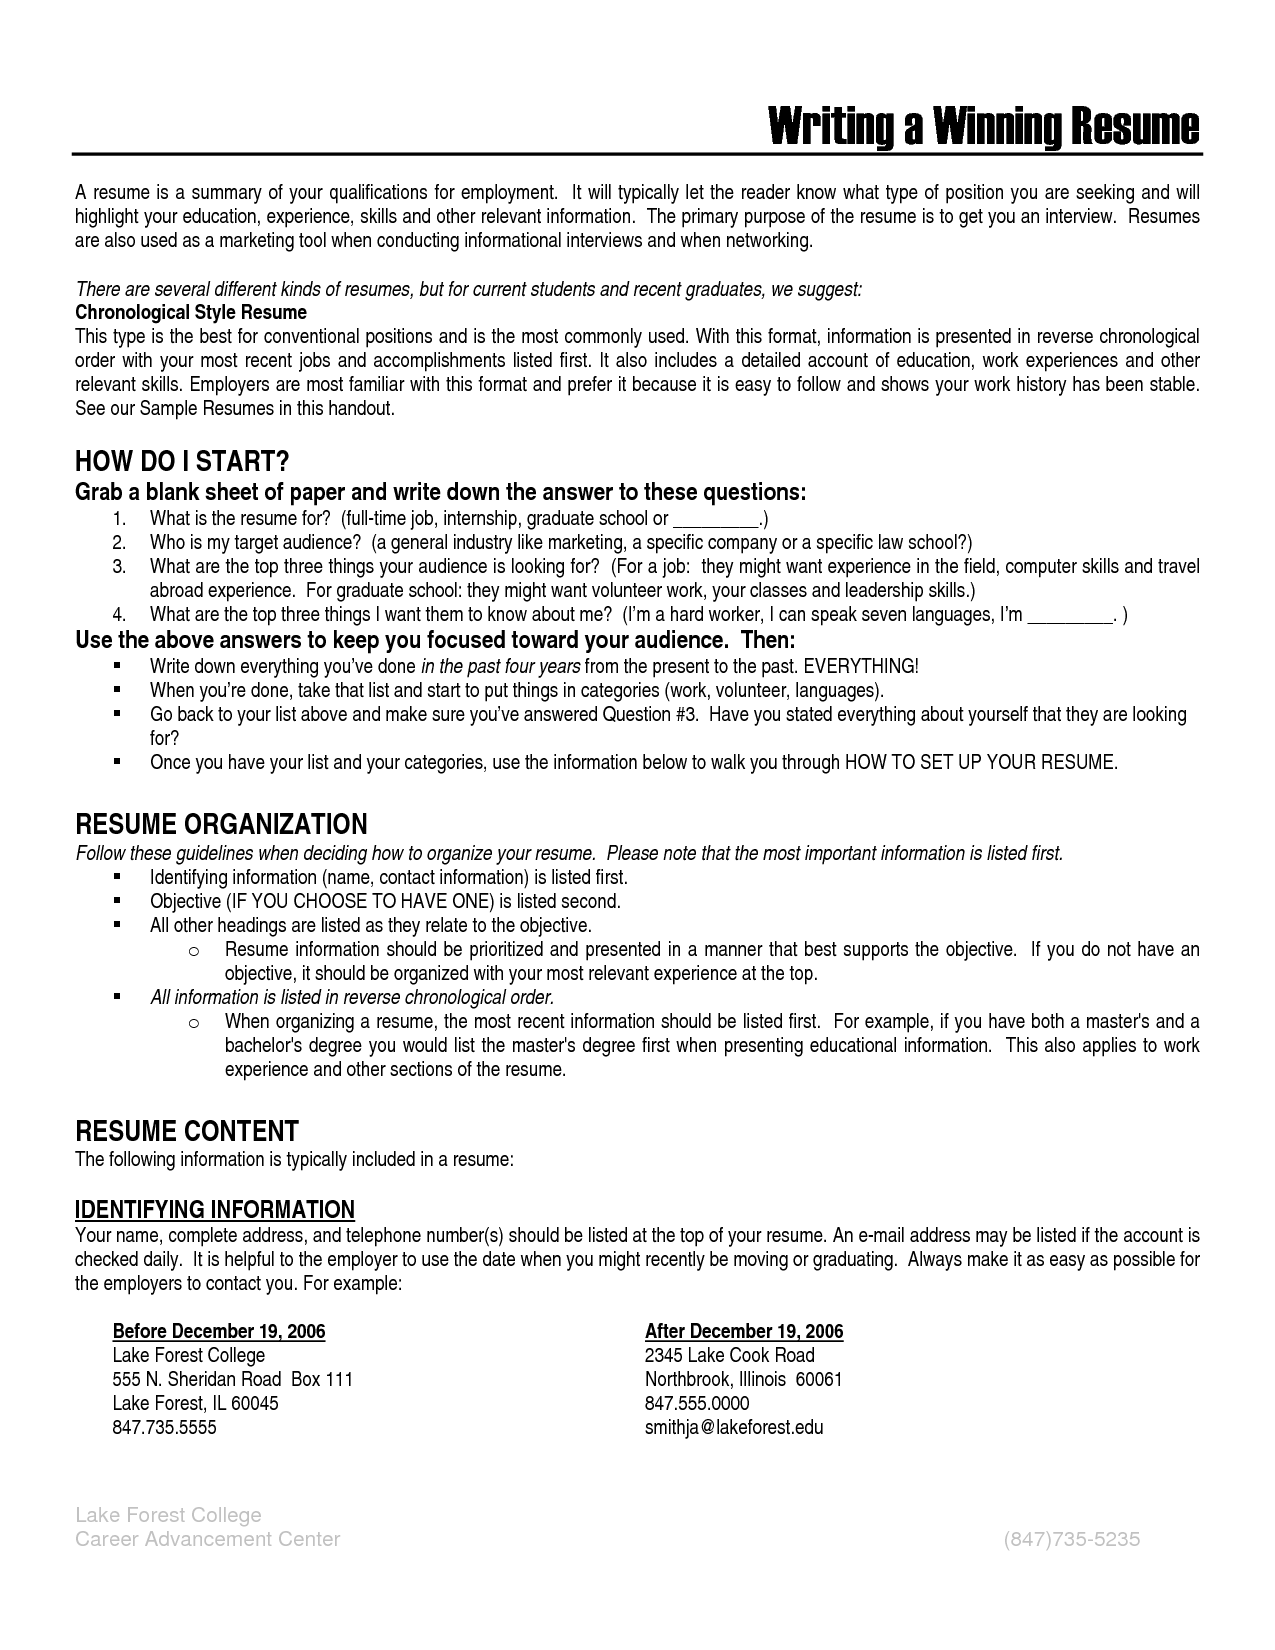 cv career history ordervolunteer work on resume